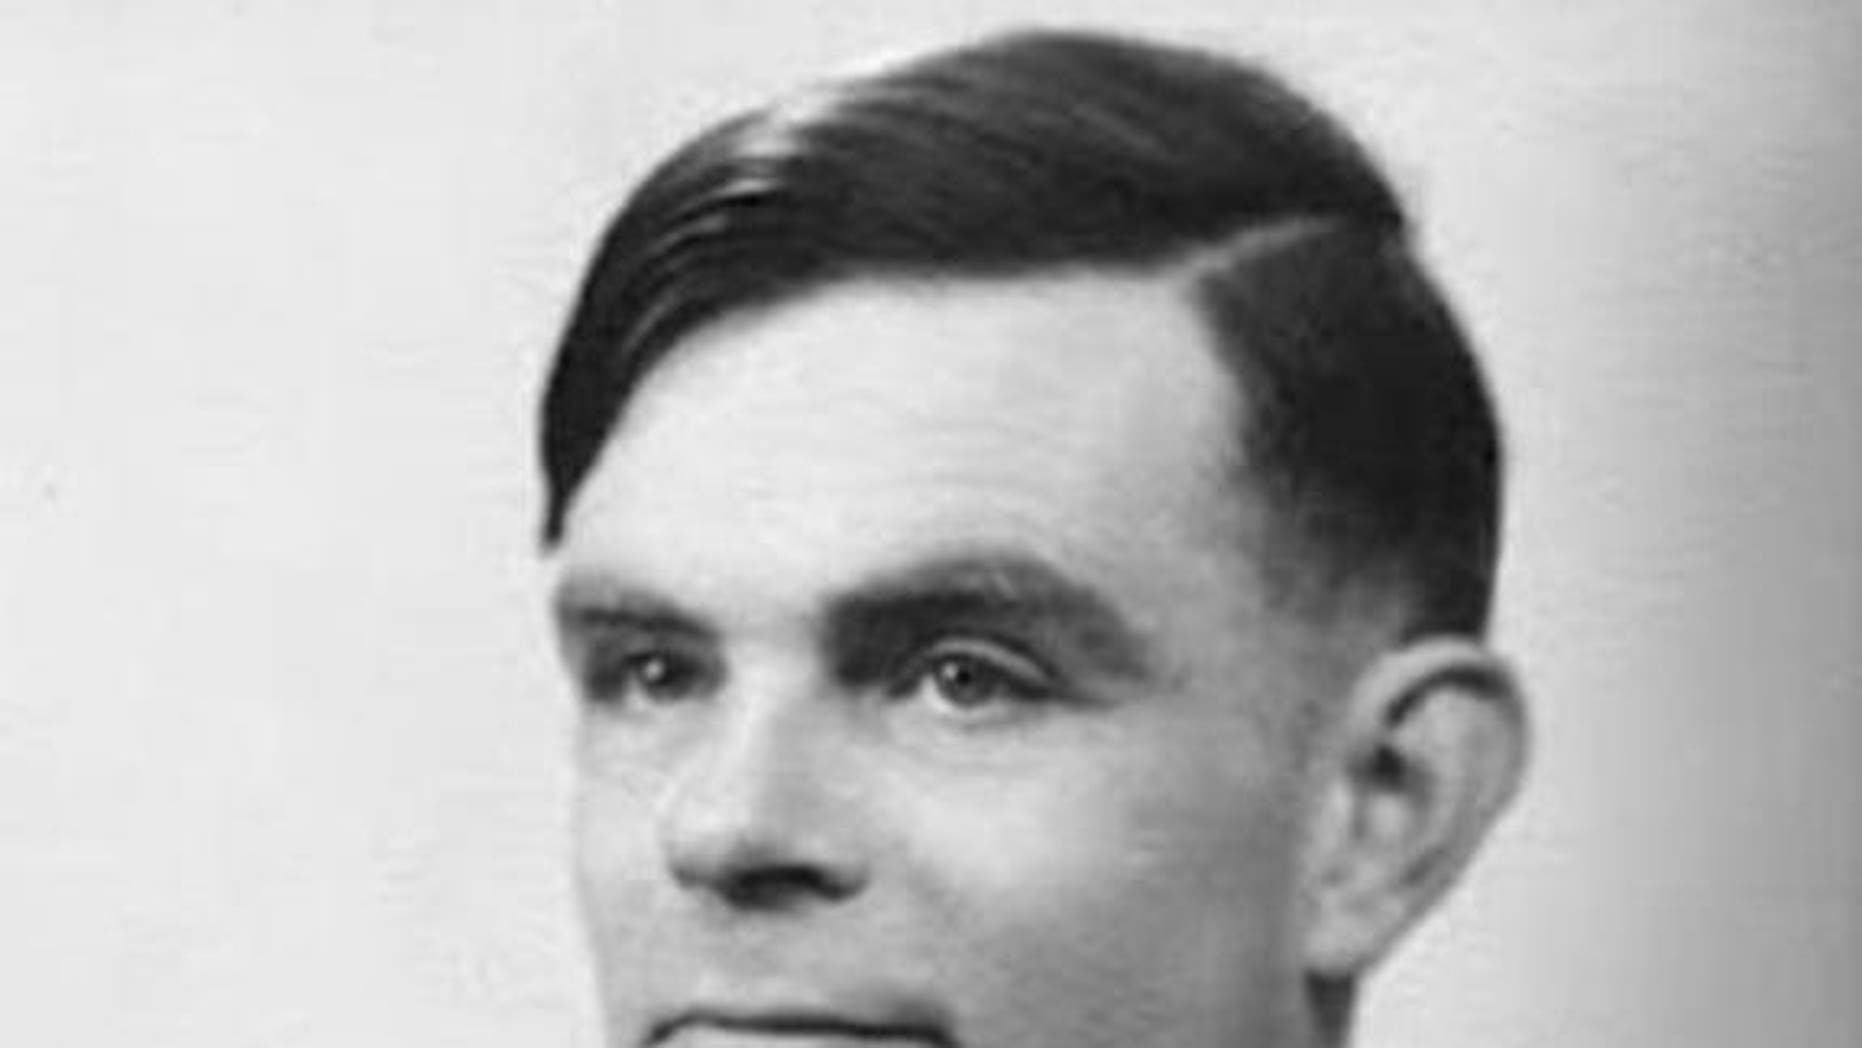 Alan Turing devised his Turing test for artificial intelligence in 1950. It's time for an upgrade, scientists say.